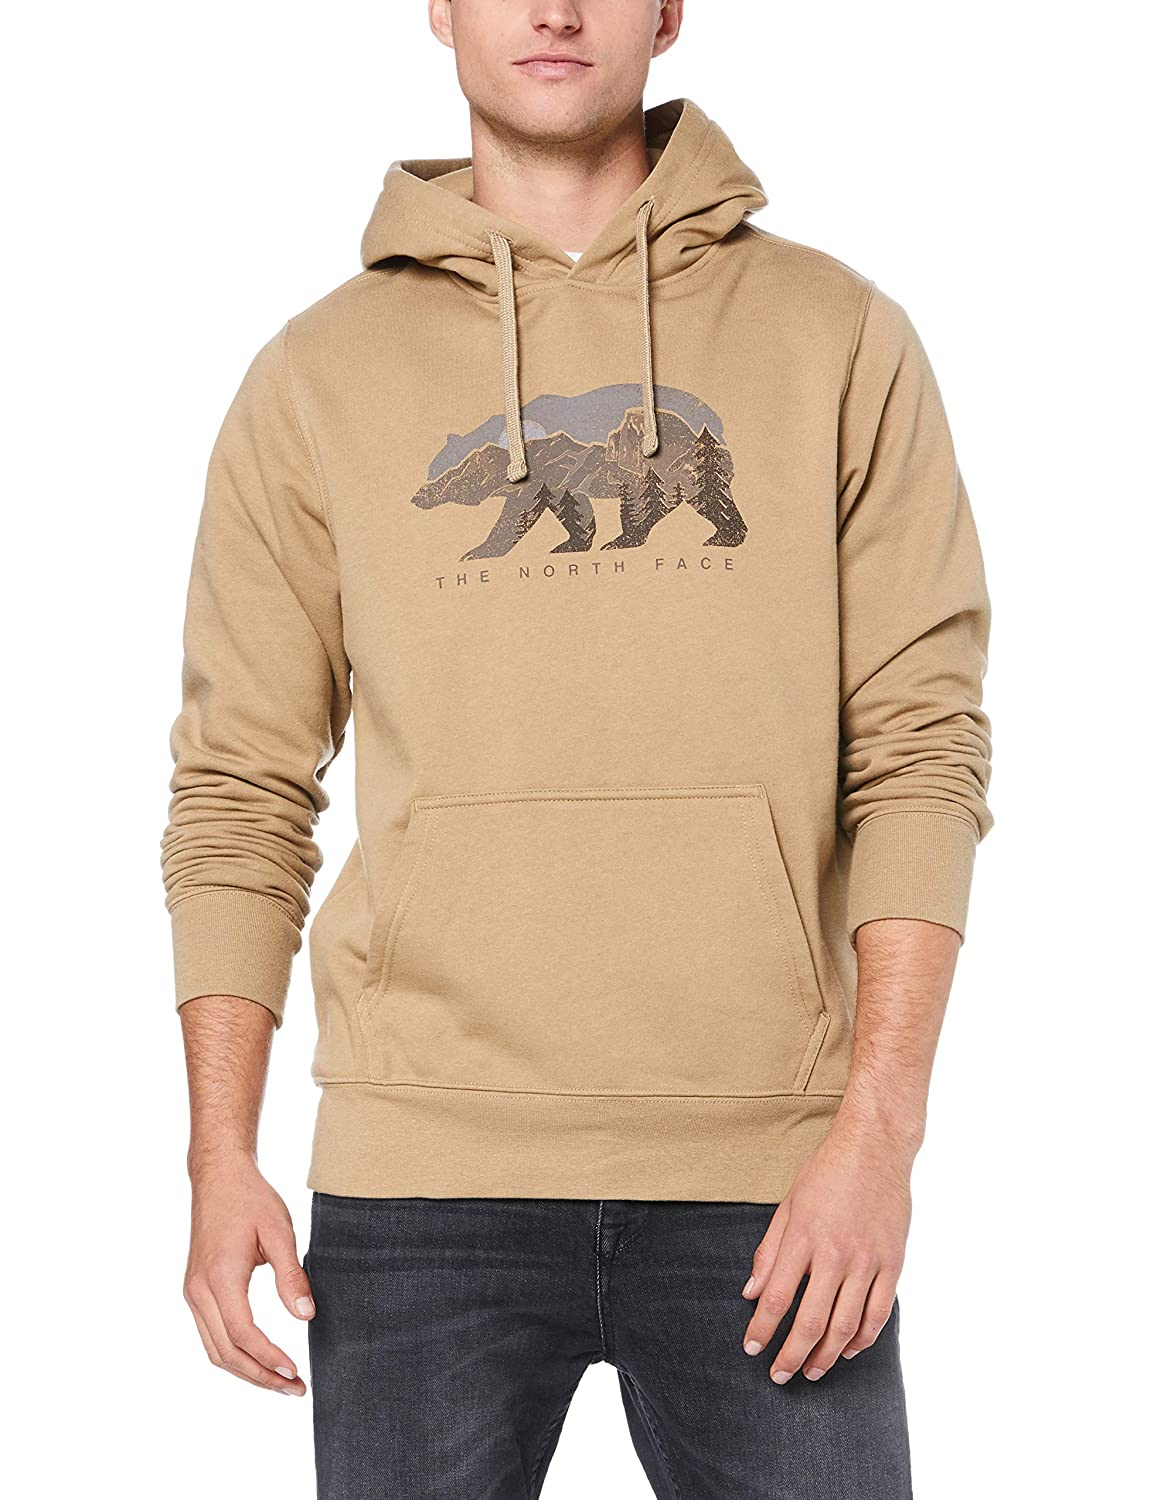 451f26705 The North Face Men's Bearscape Pullover Hoodie